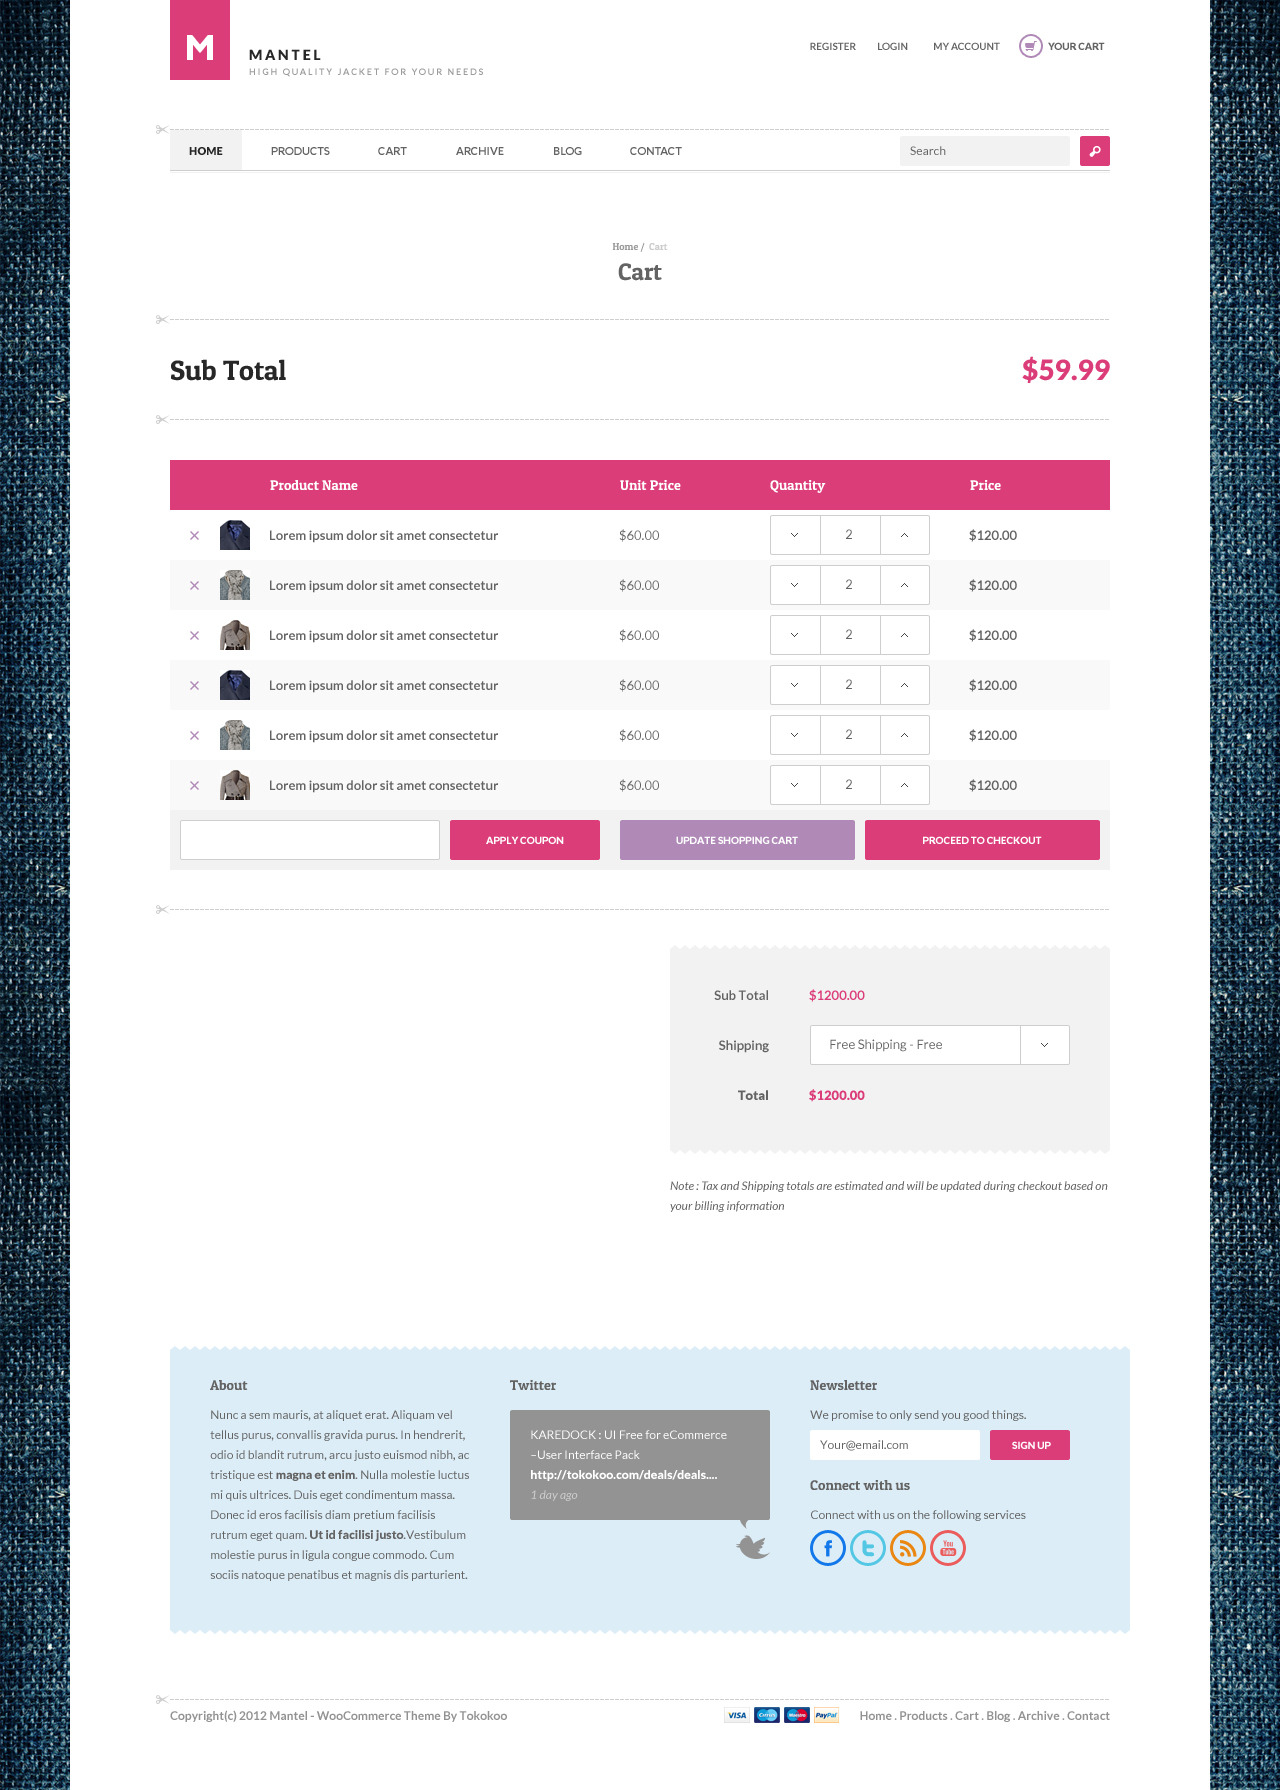 Mantel - Ultimate eCommerce PSD Templates